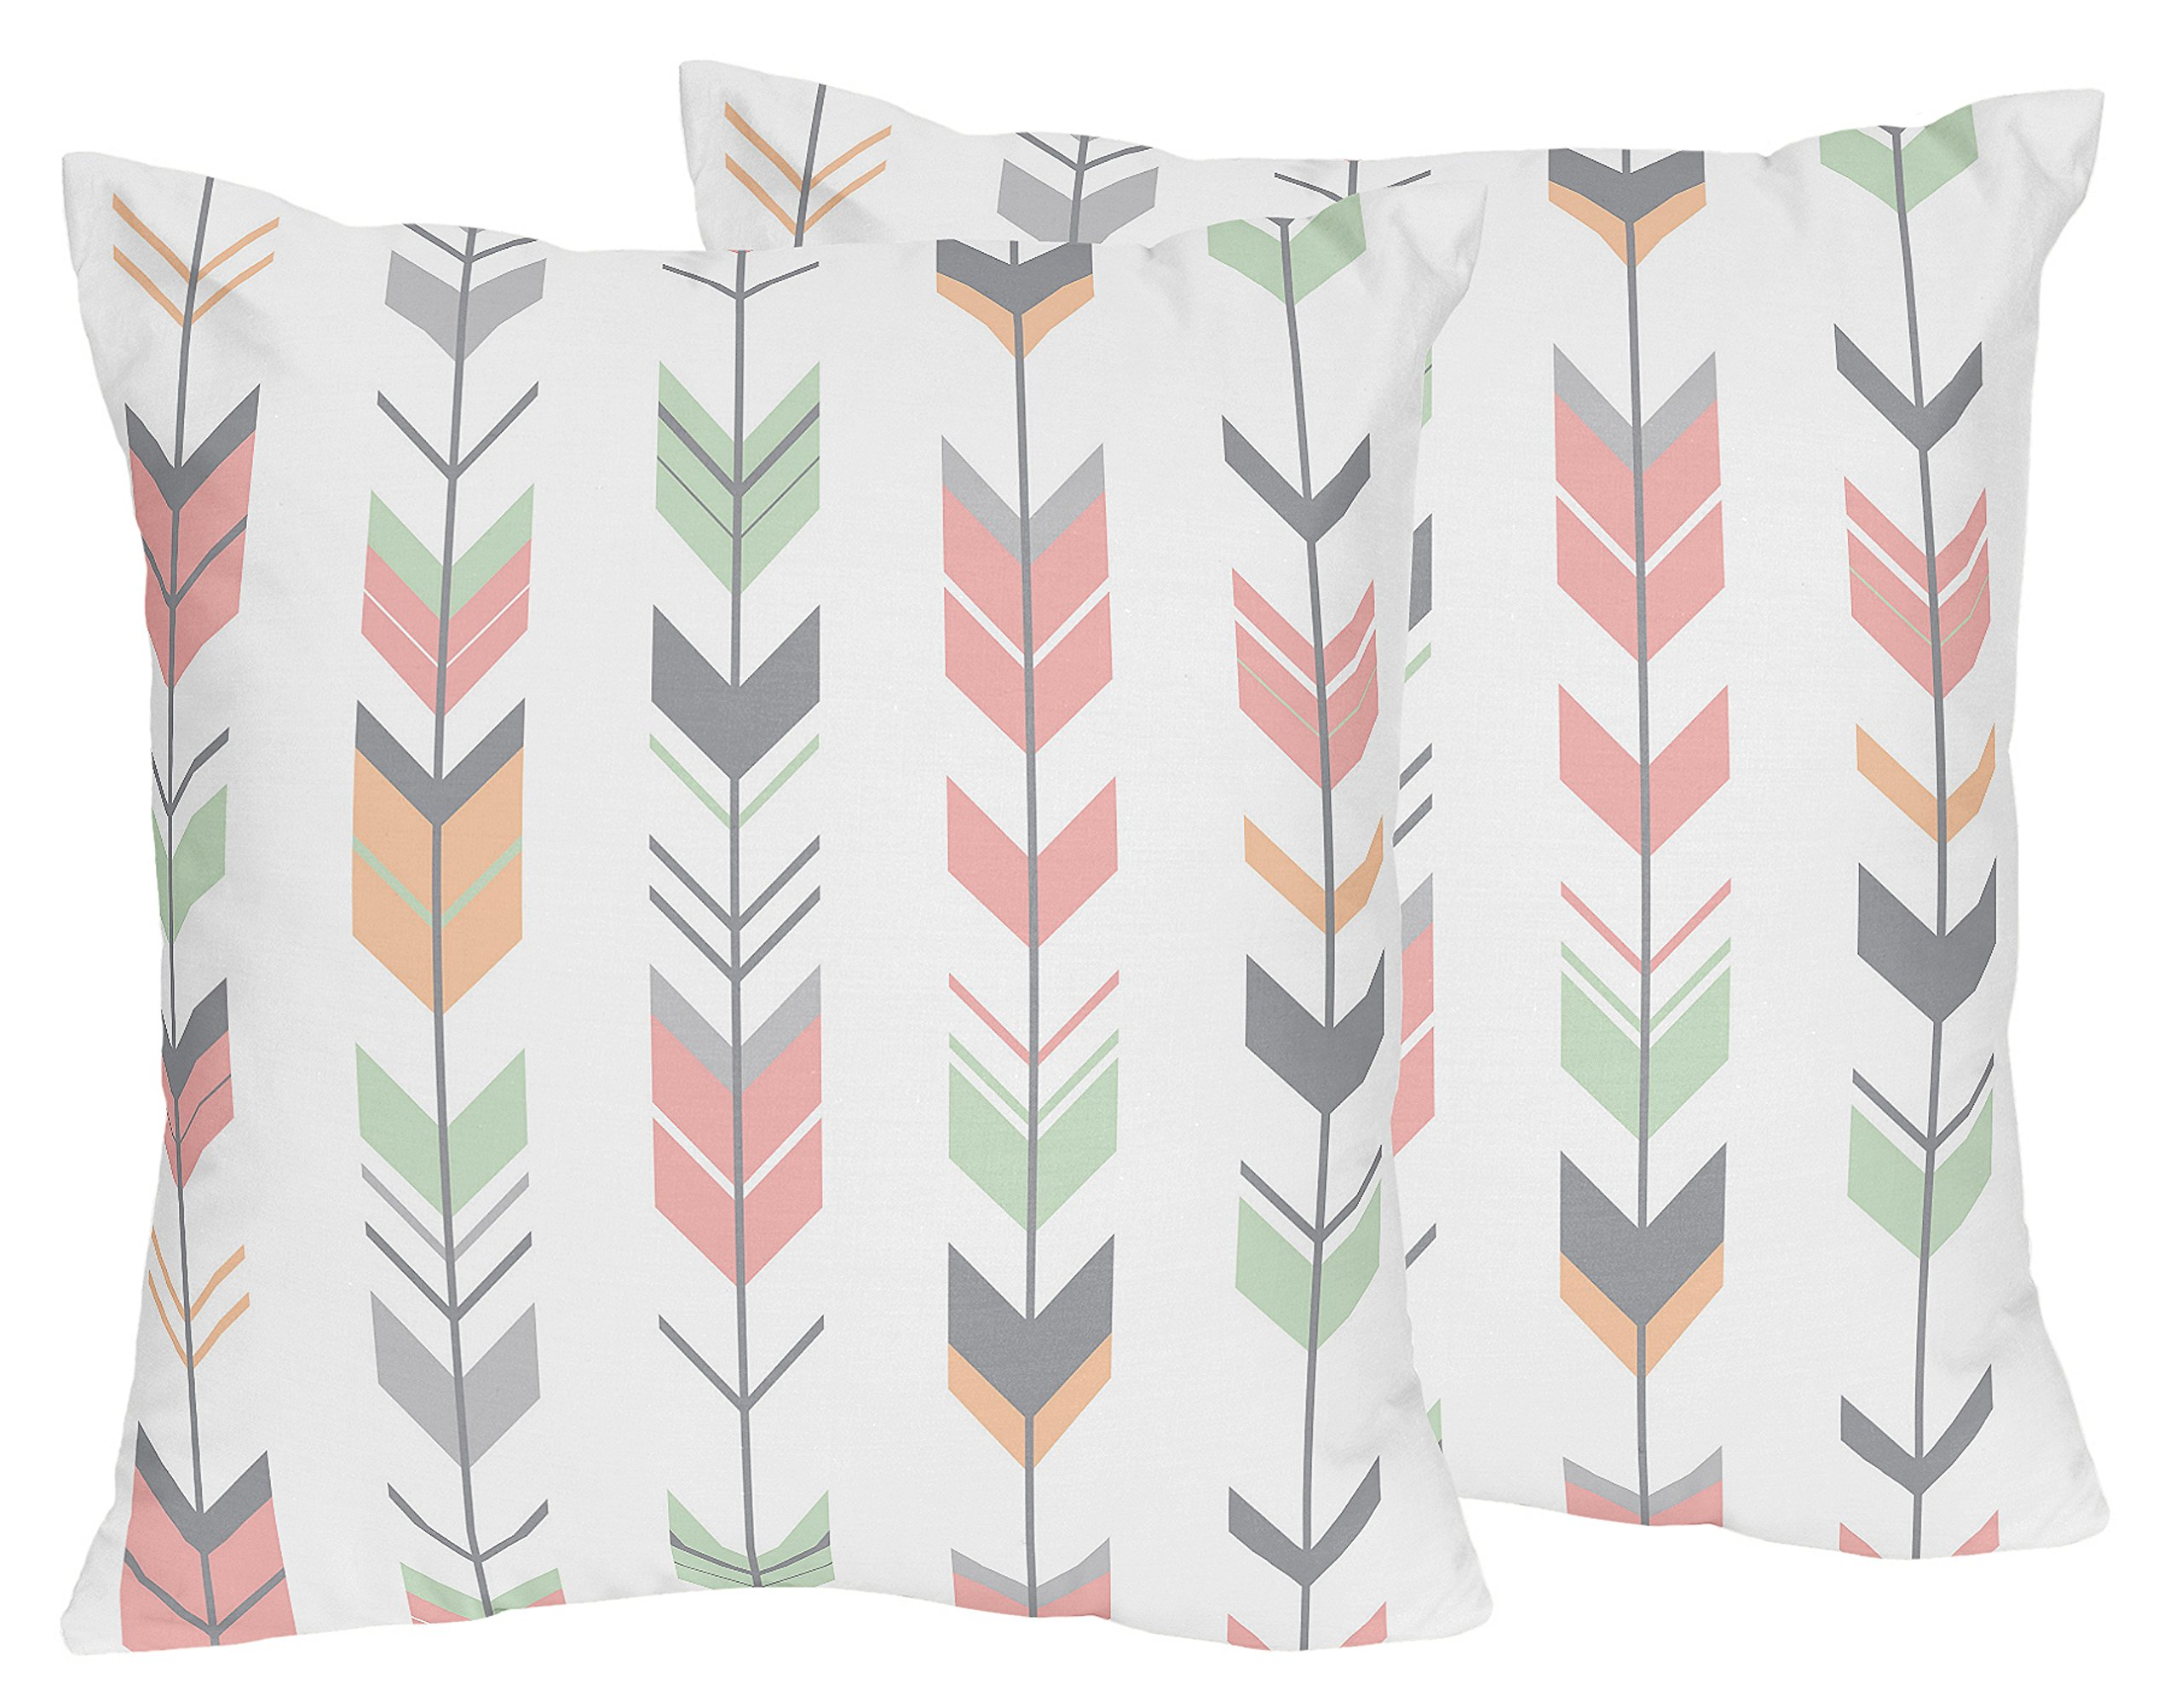 Sweet JoJo Designs 2-Piece Coral and Mint Arrow Print Decorative Accent Throw Pillows for Woodland Arrow Collection